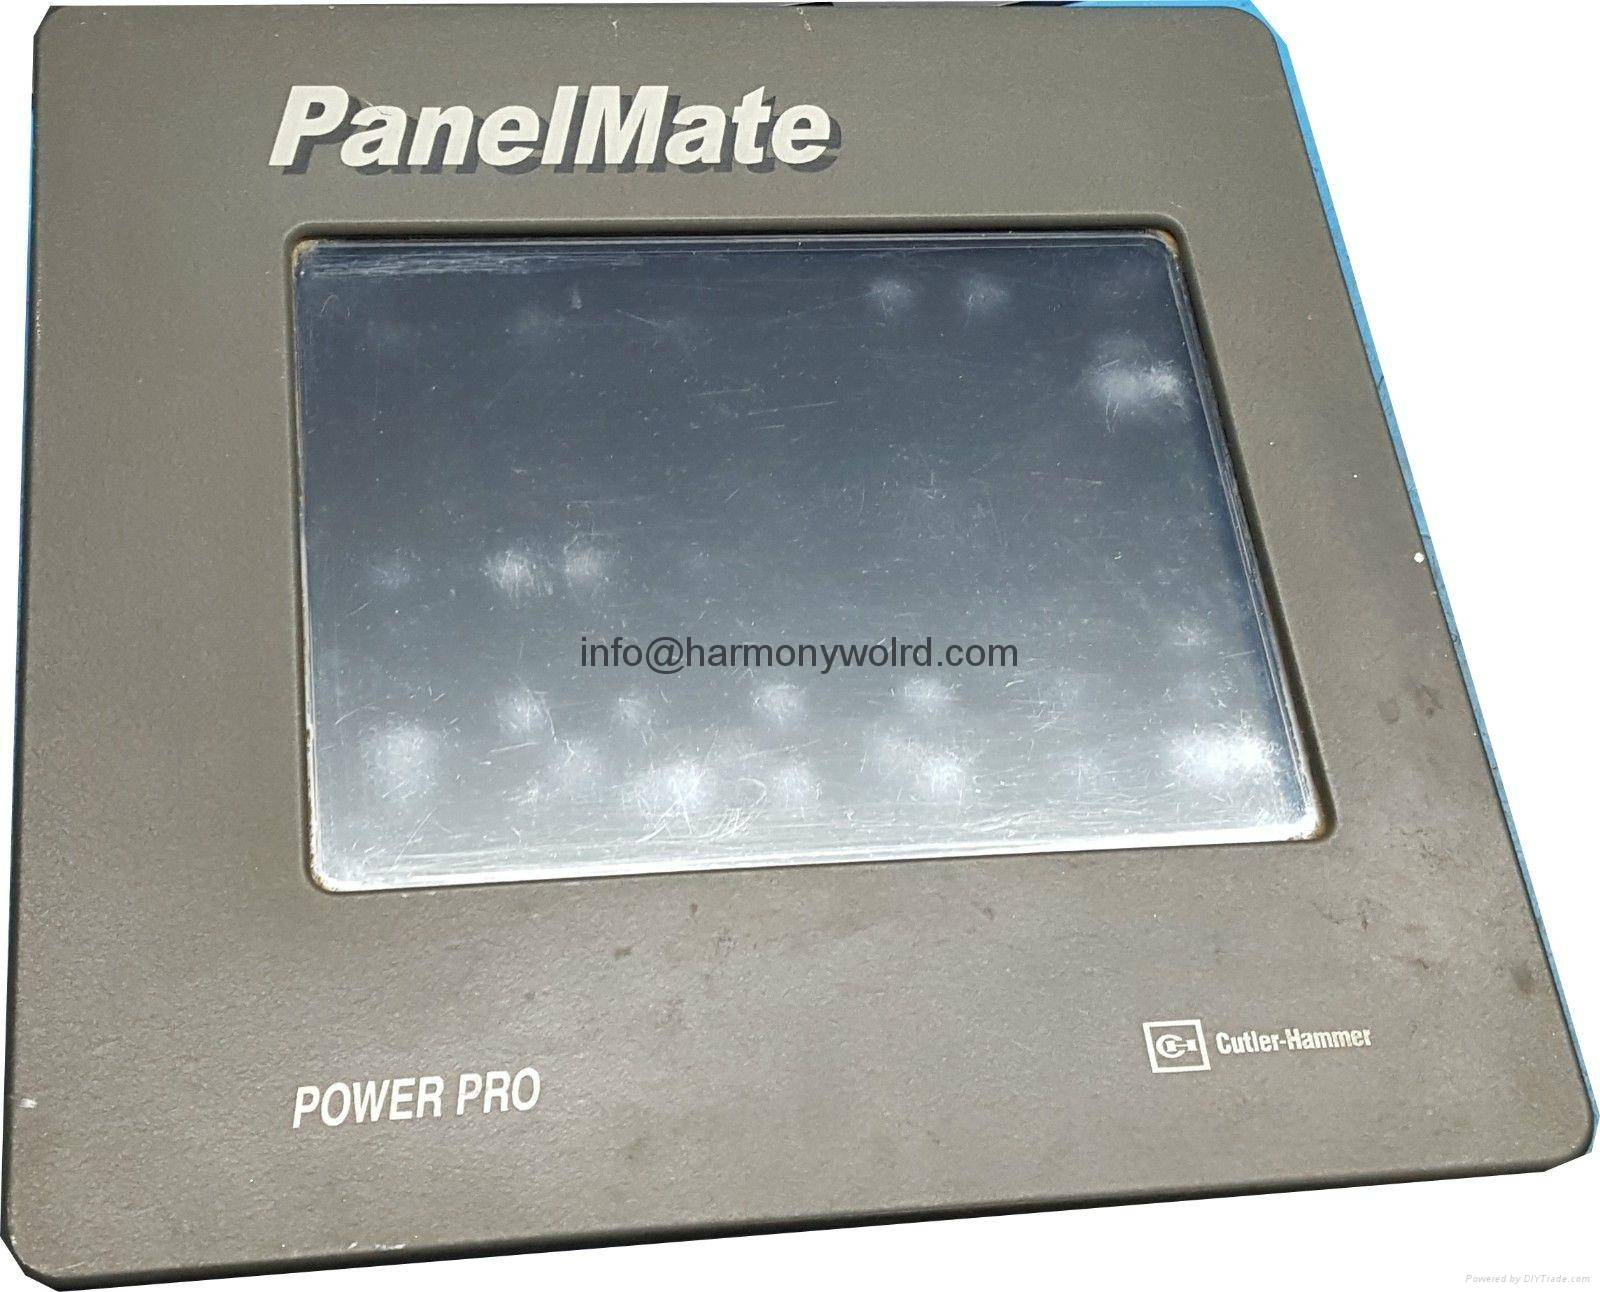 LCD Upgrade Monitor For CUTLER HAMMER PANELMATE 3985T PMPP 3000 92-01907-03 6